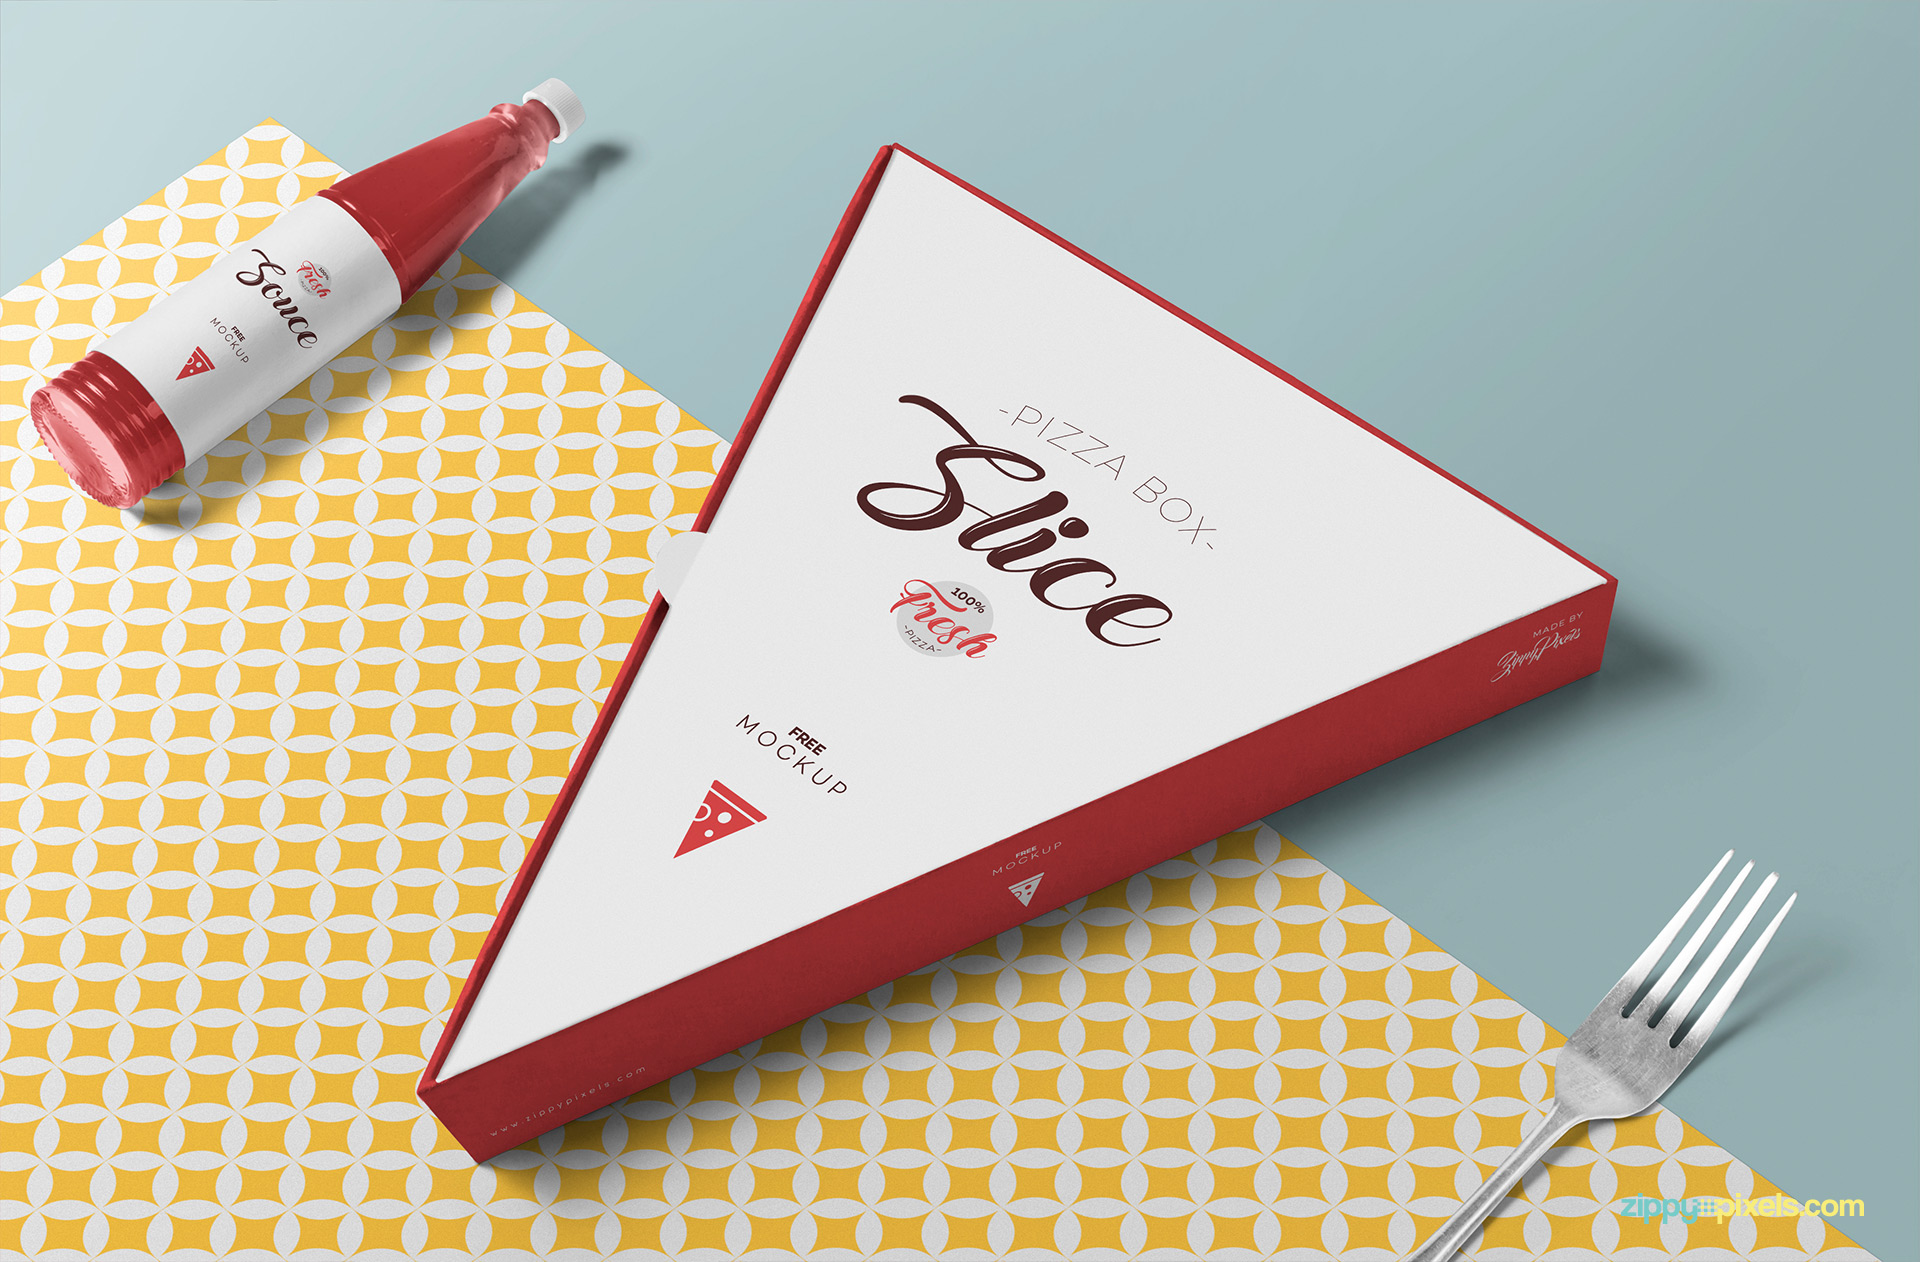 Free pizza slice box mockup PSD.